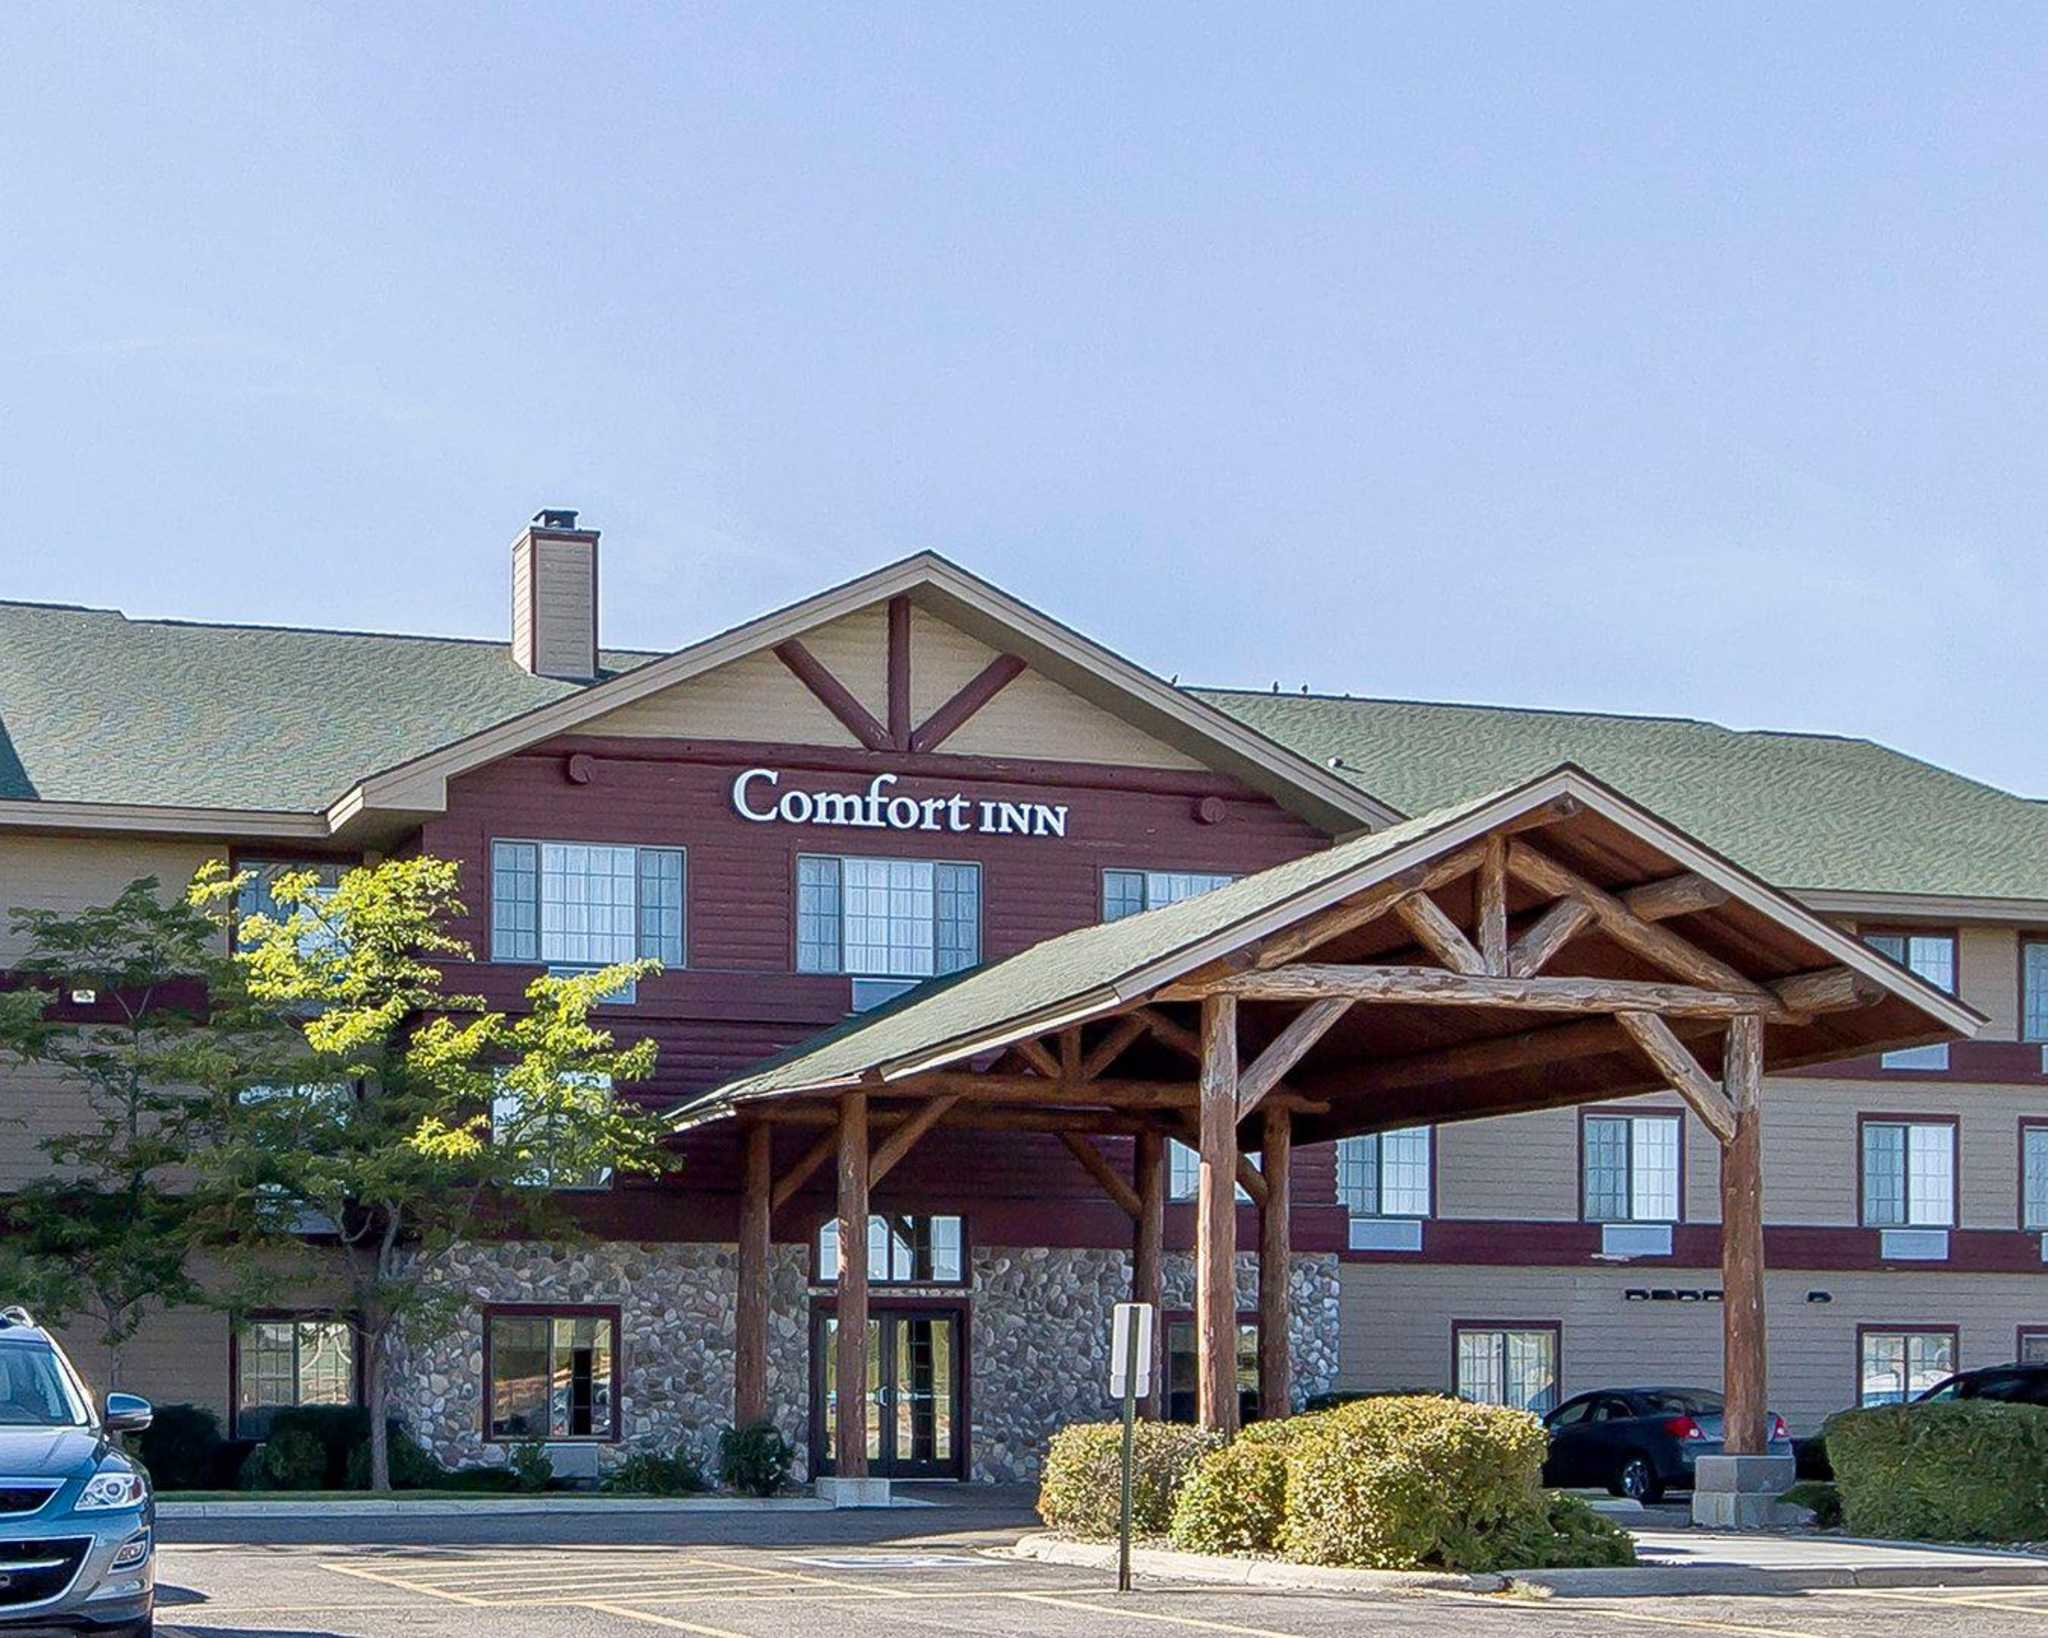 Comfort Inn Medical Center Coupons Near Me In Owatonna Mn